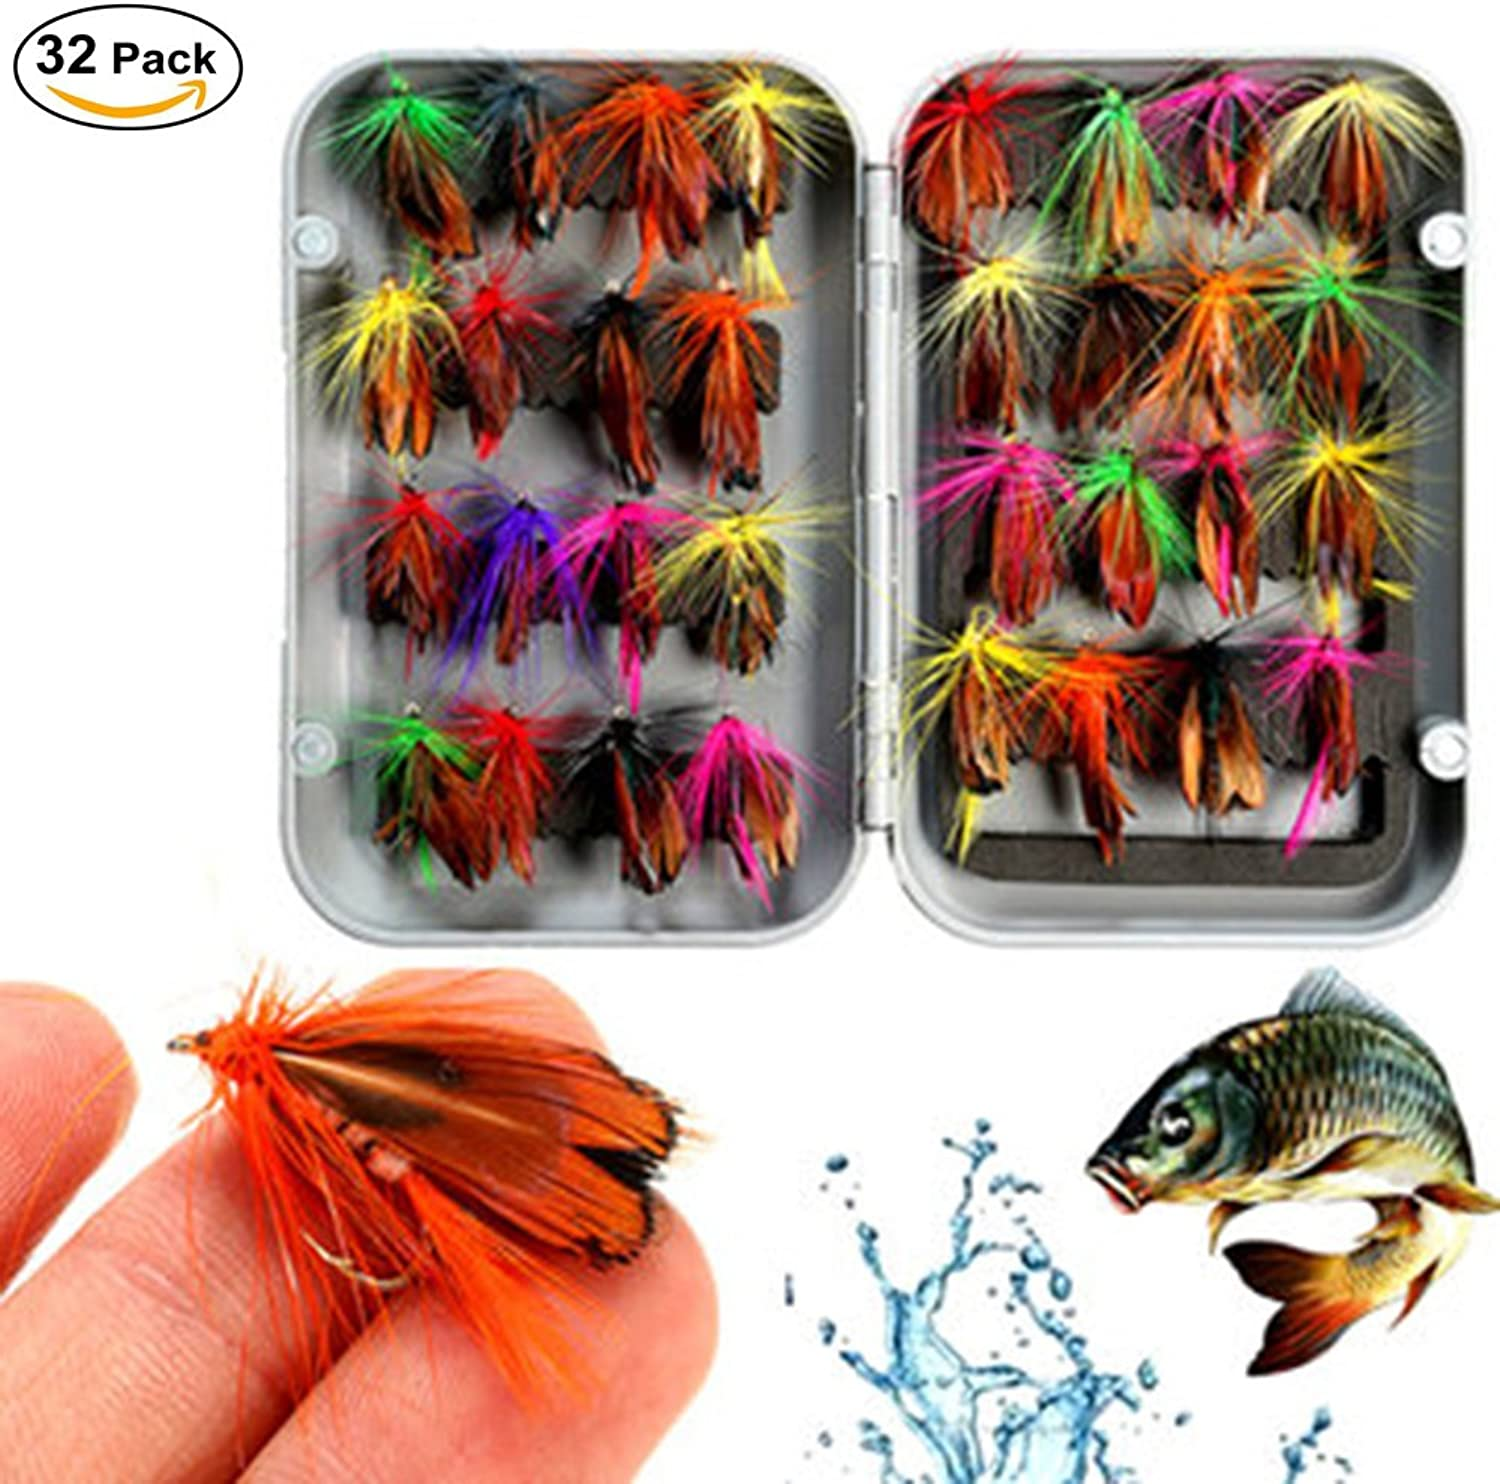 Fly Fishing Lure Butterfly Like Dry Flies Bait Hook for Bass Salmon Trout with Waterproof Pocketed Case Box (32pcs)